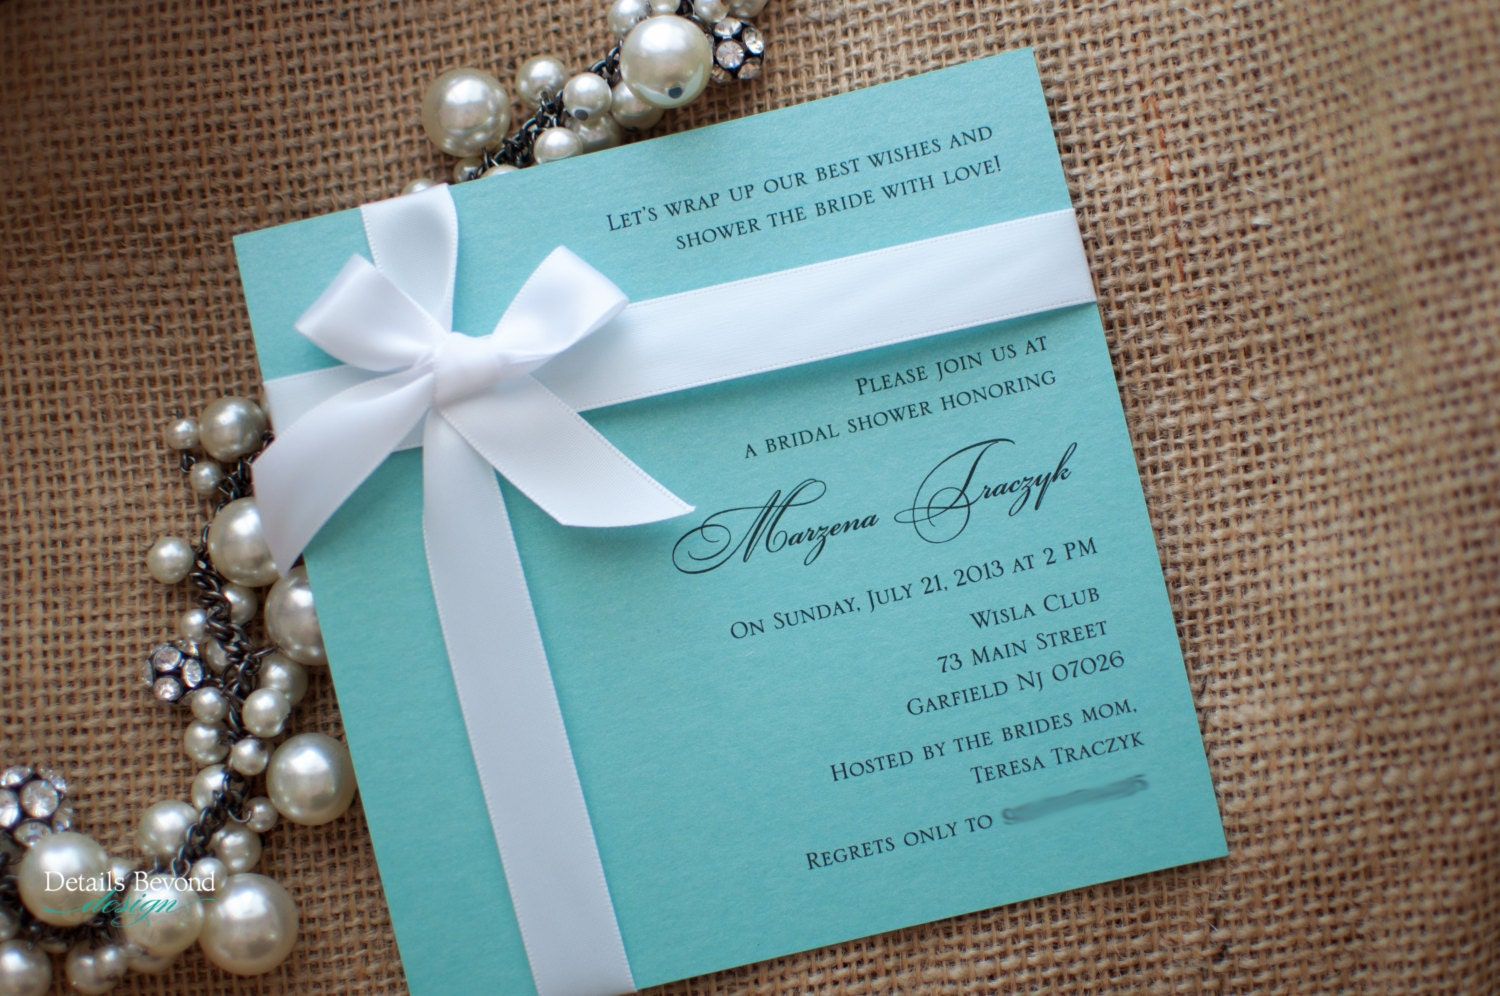 Tiffany Box Bridal Shower Invitation on Tiffany Blue Pearlescent